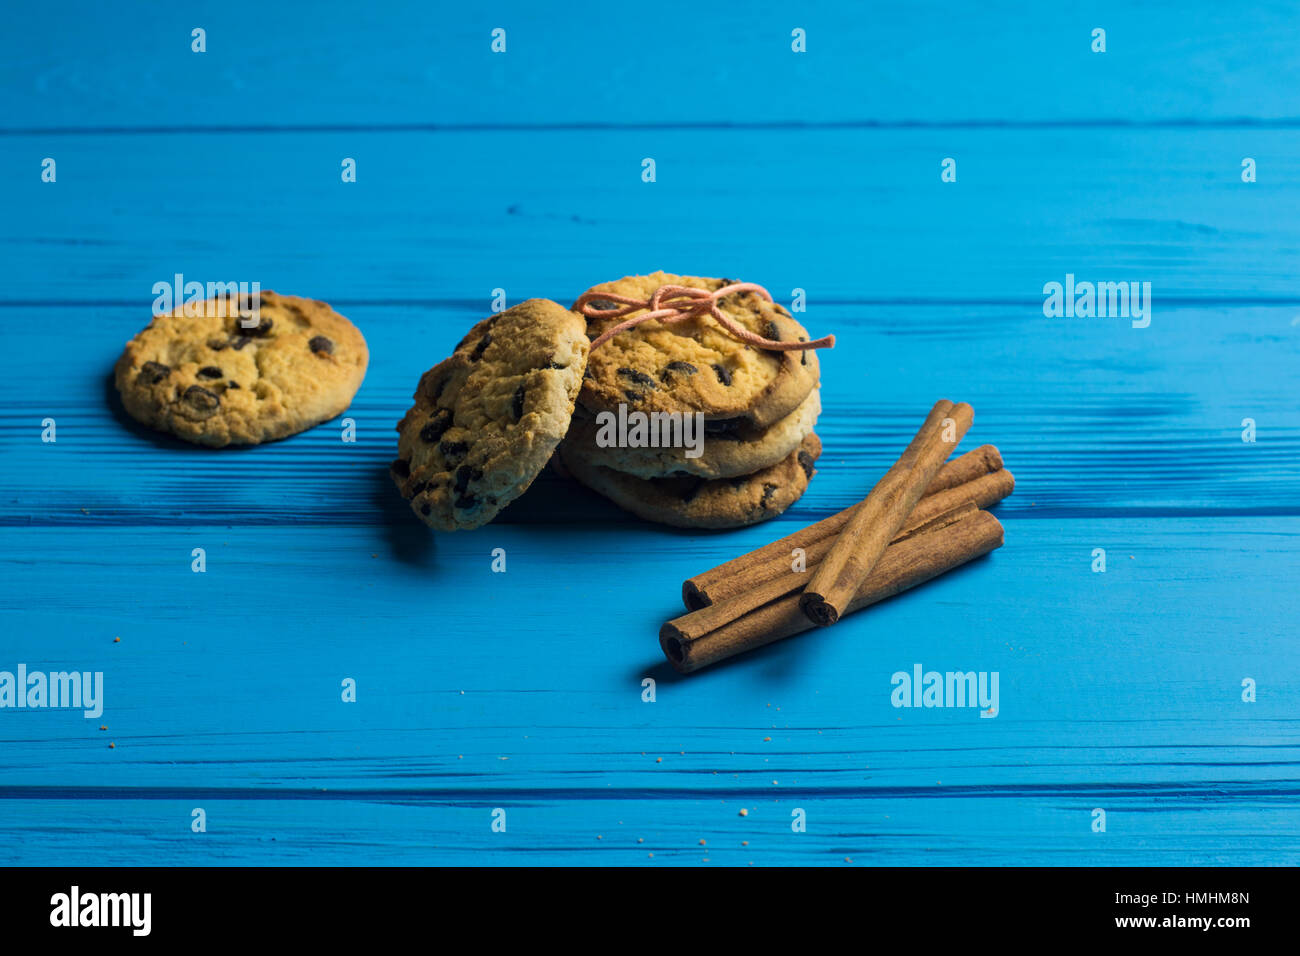 Cookies With Chocolate And Cinnamon Sticks On Blue Wooden Background